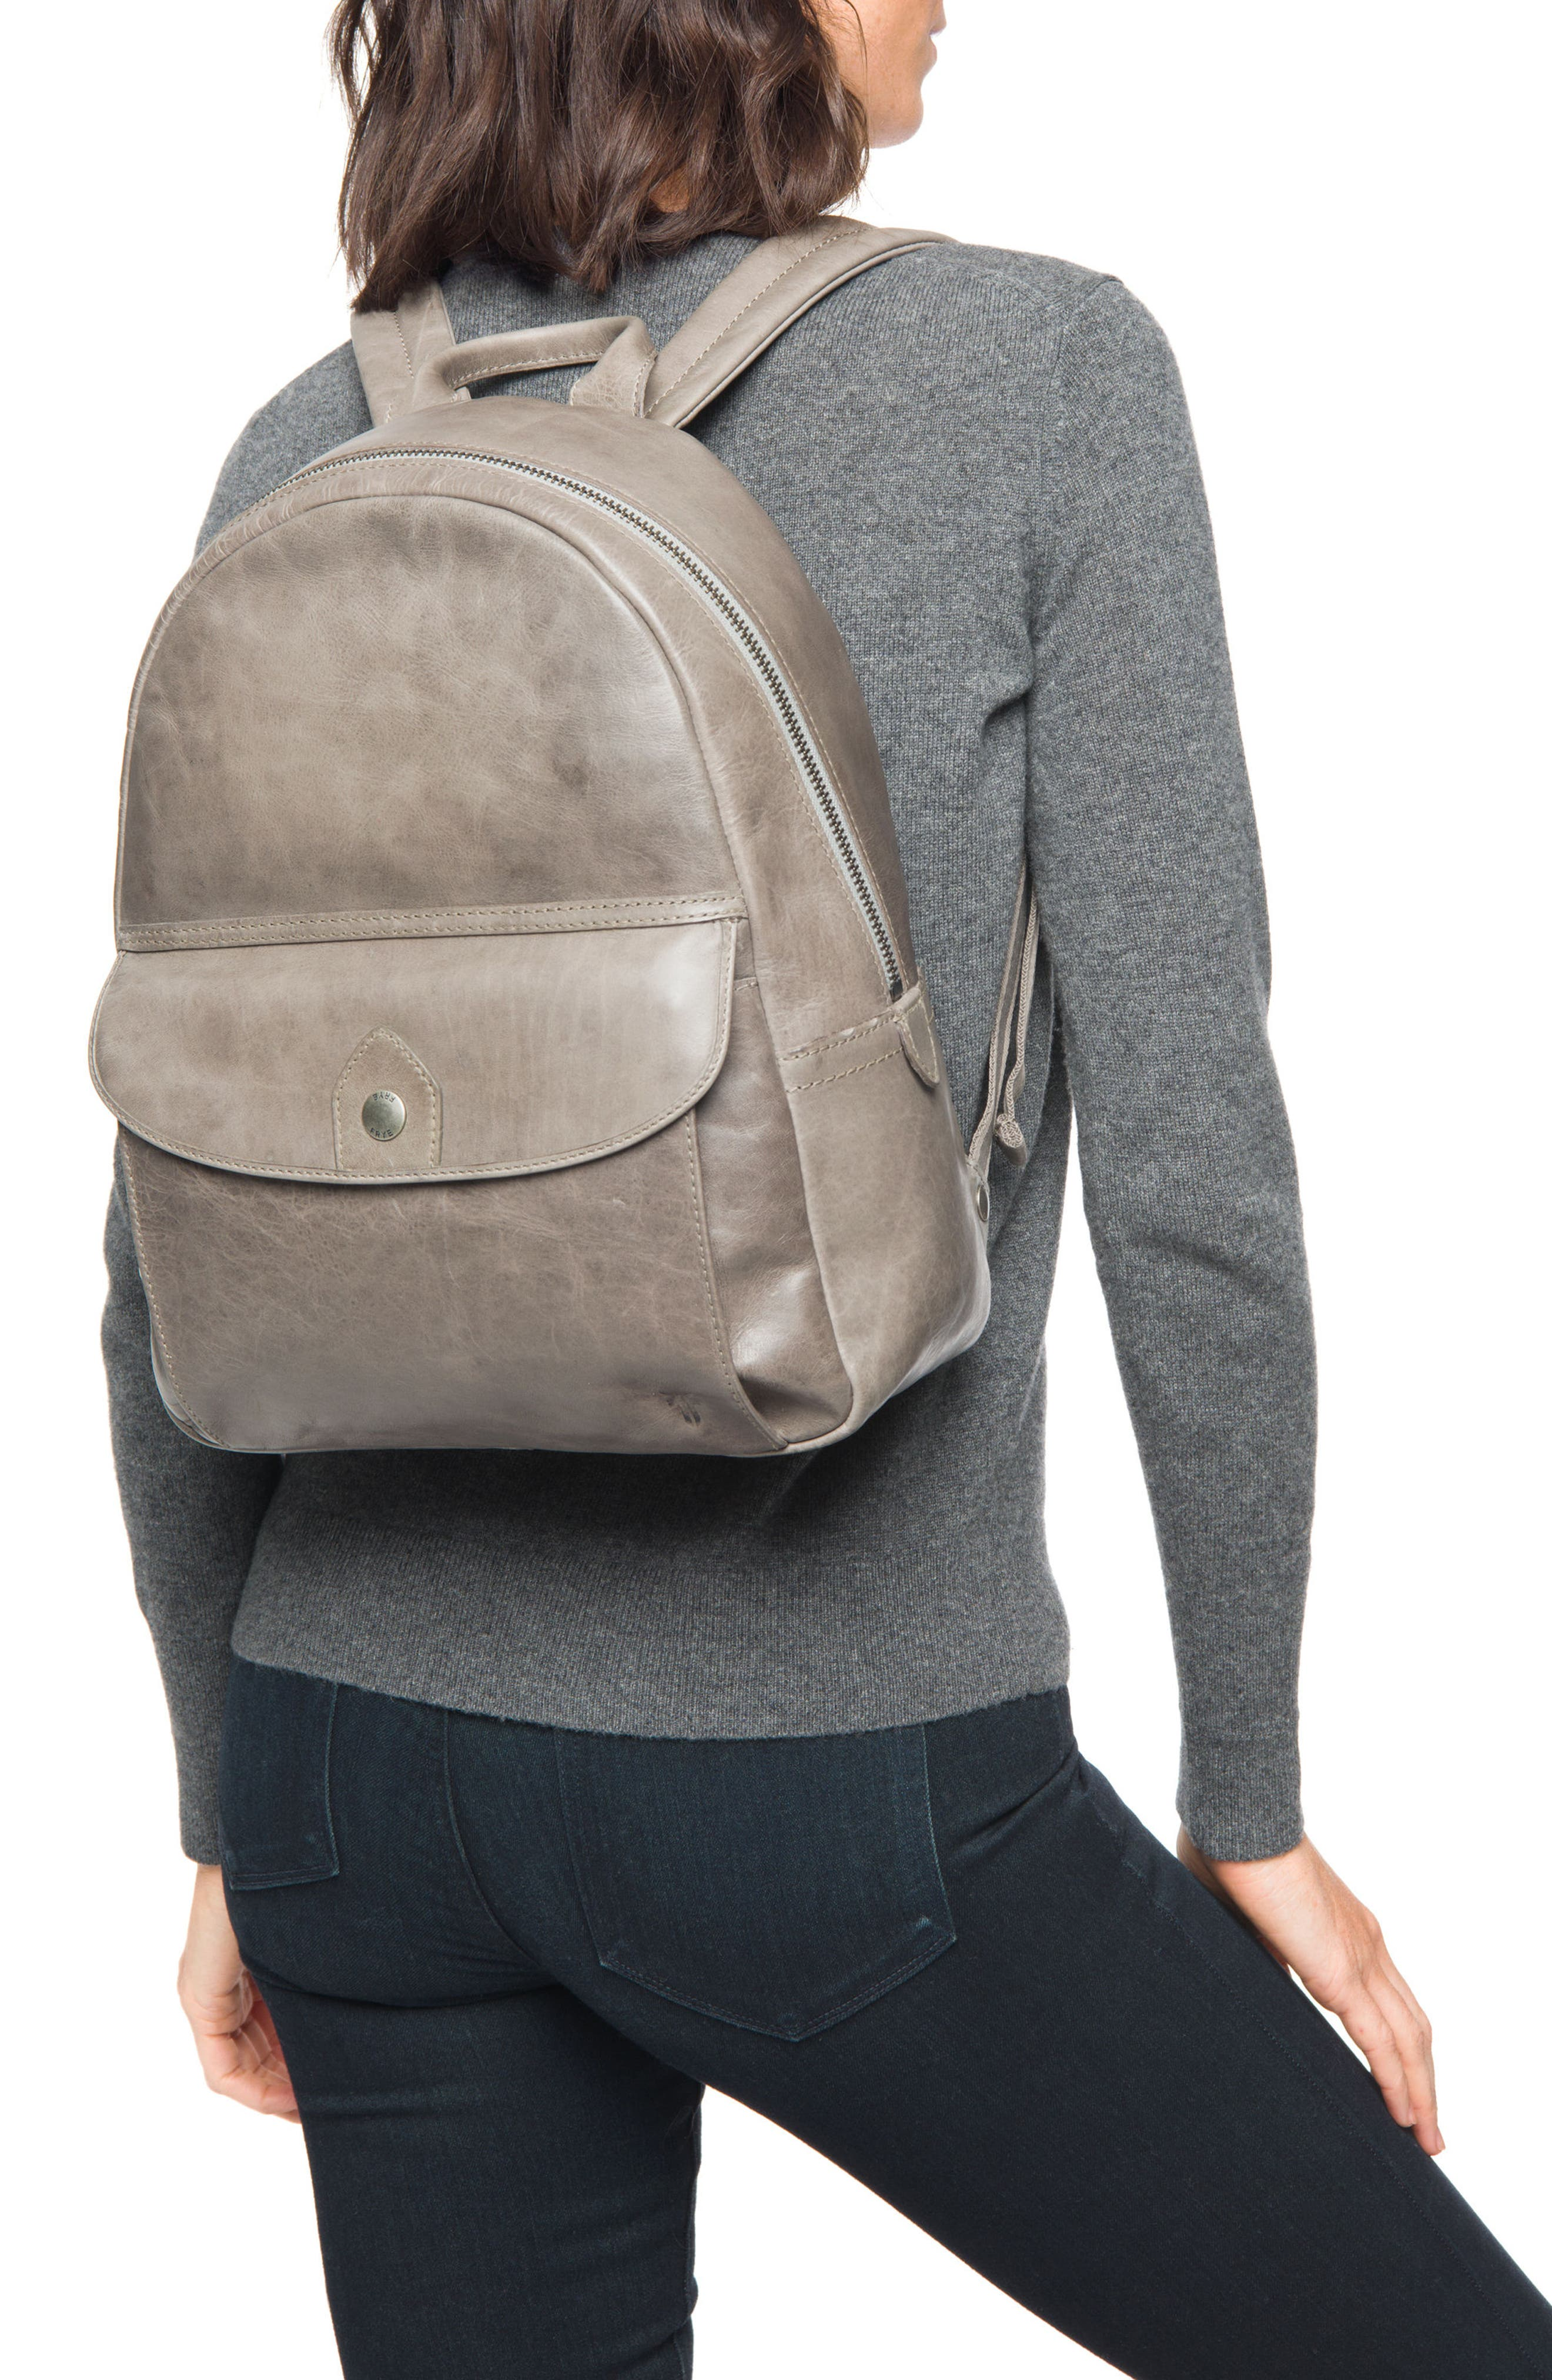 Melissa Leather Backpack,                             Alternate thumbnail 2, color,                             020